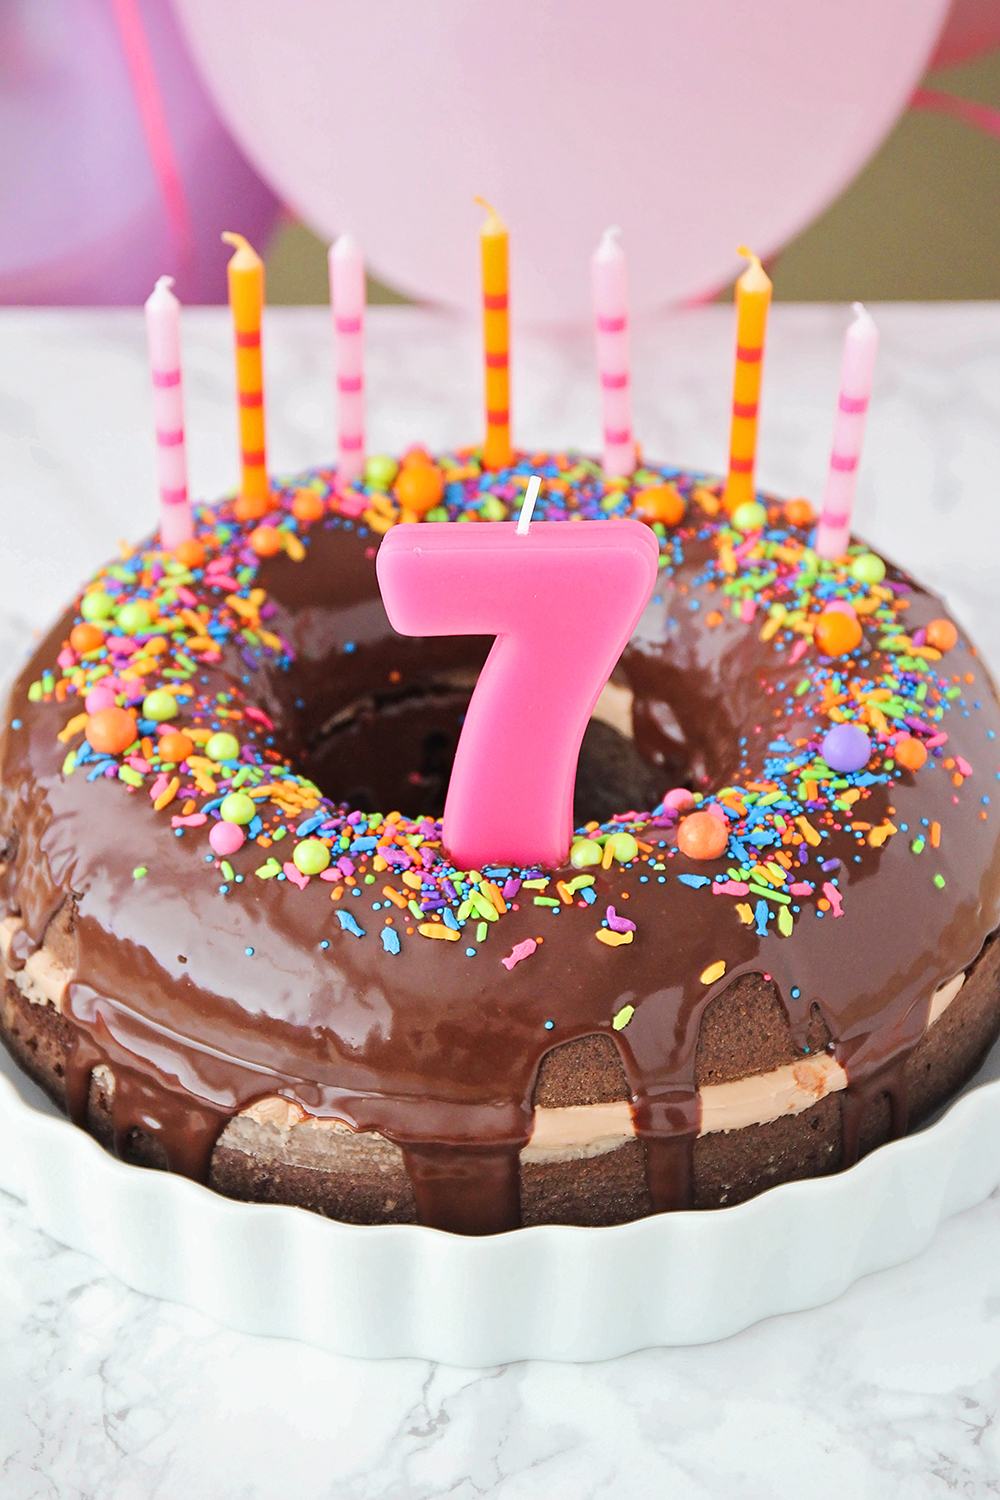 This Fun And Whimsical Chocolate Donut Birthday Cake Is So Delicious Indulgent